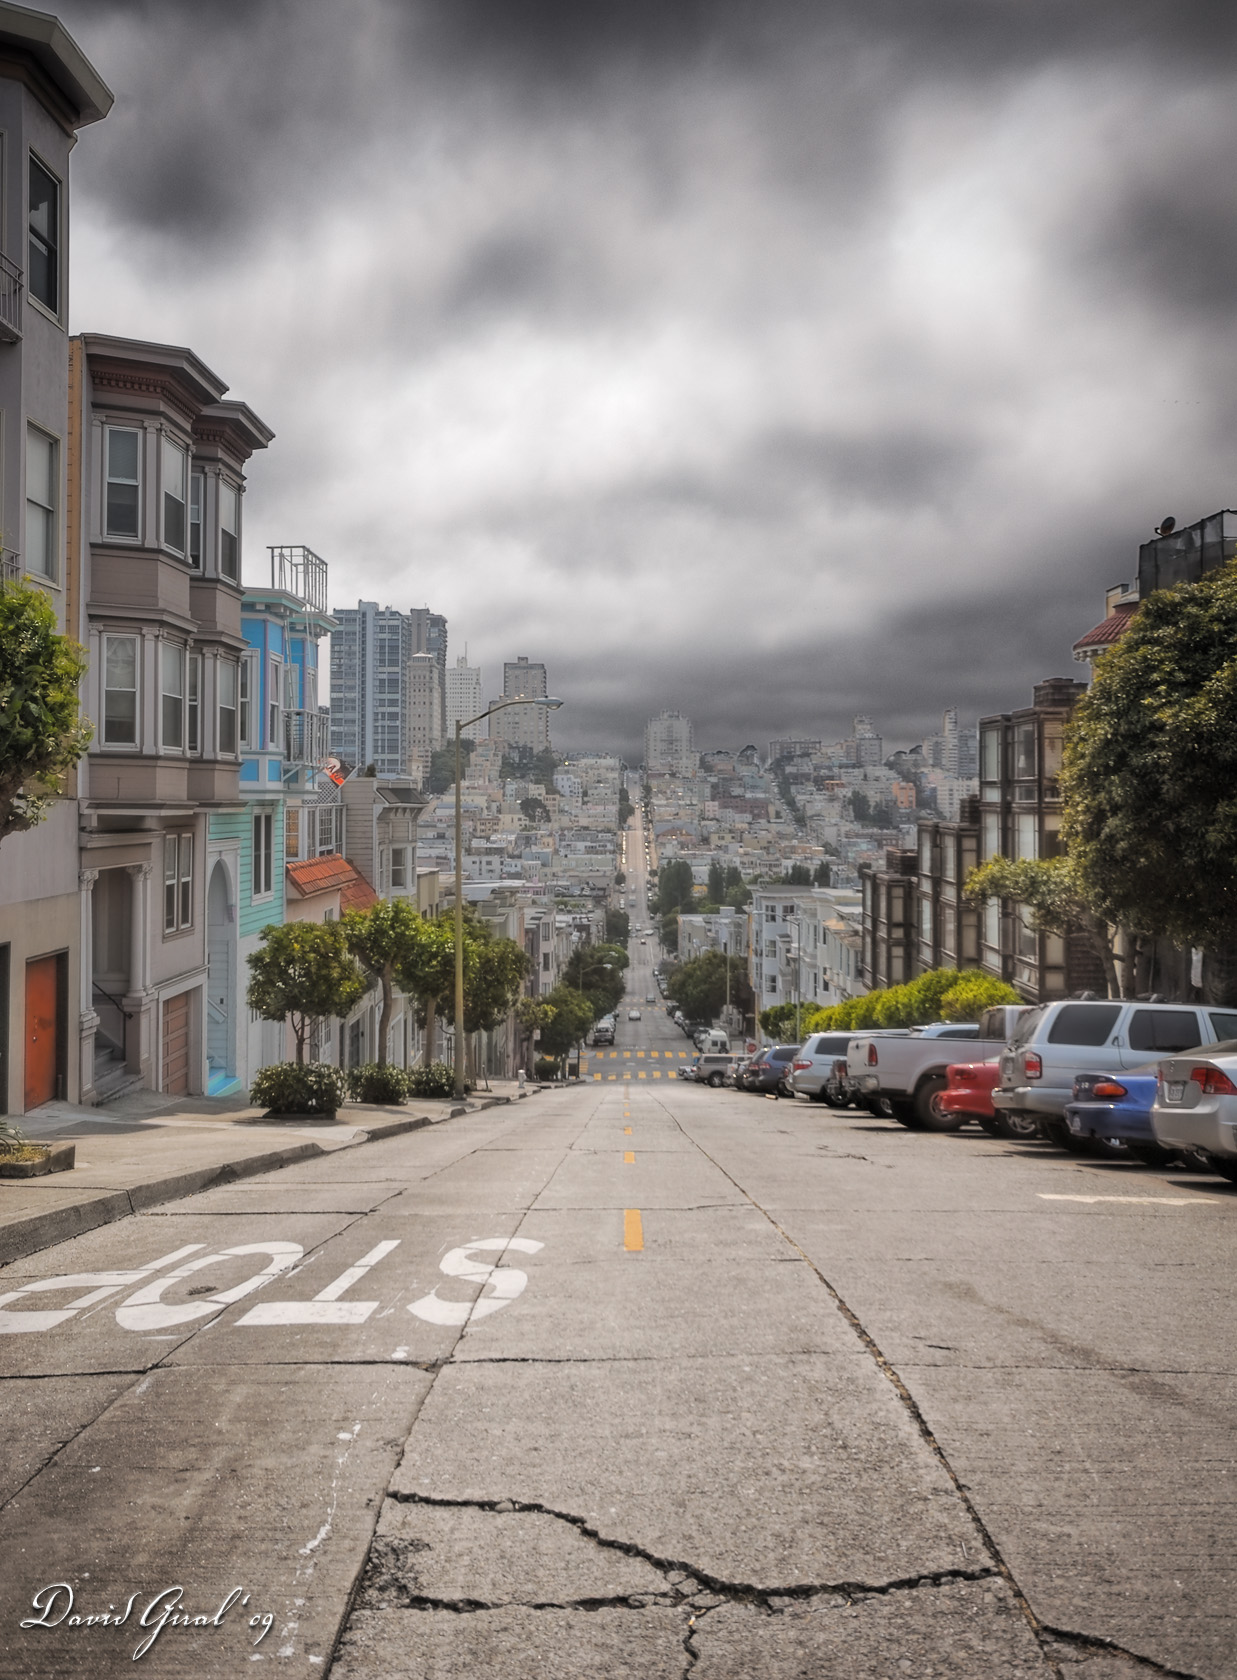 Landscape photography top 10 photos of 2009 david giral for San francisco landscape